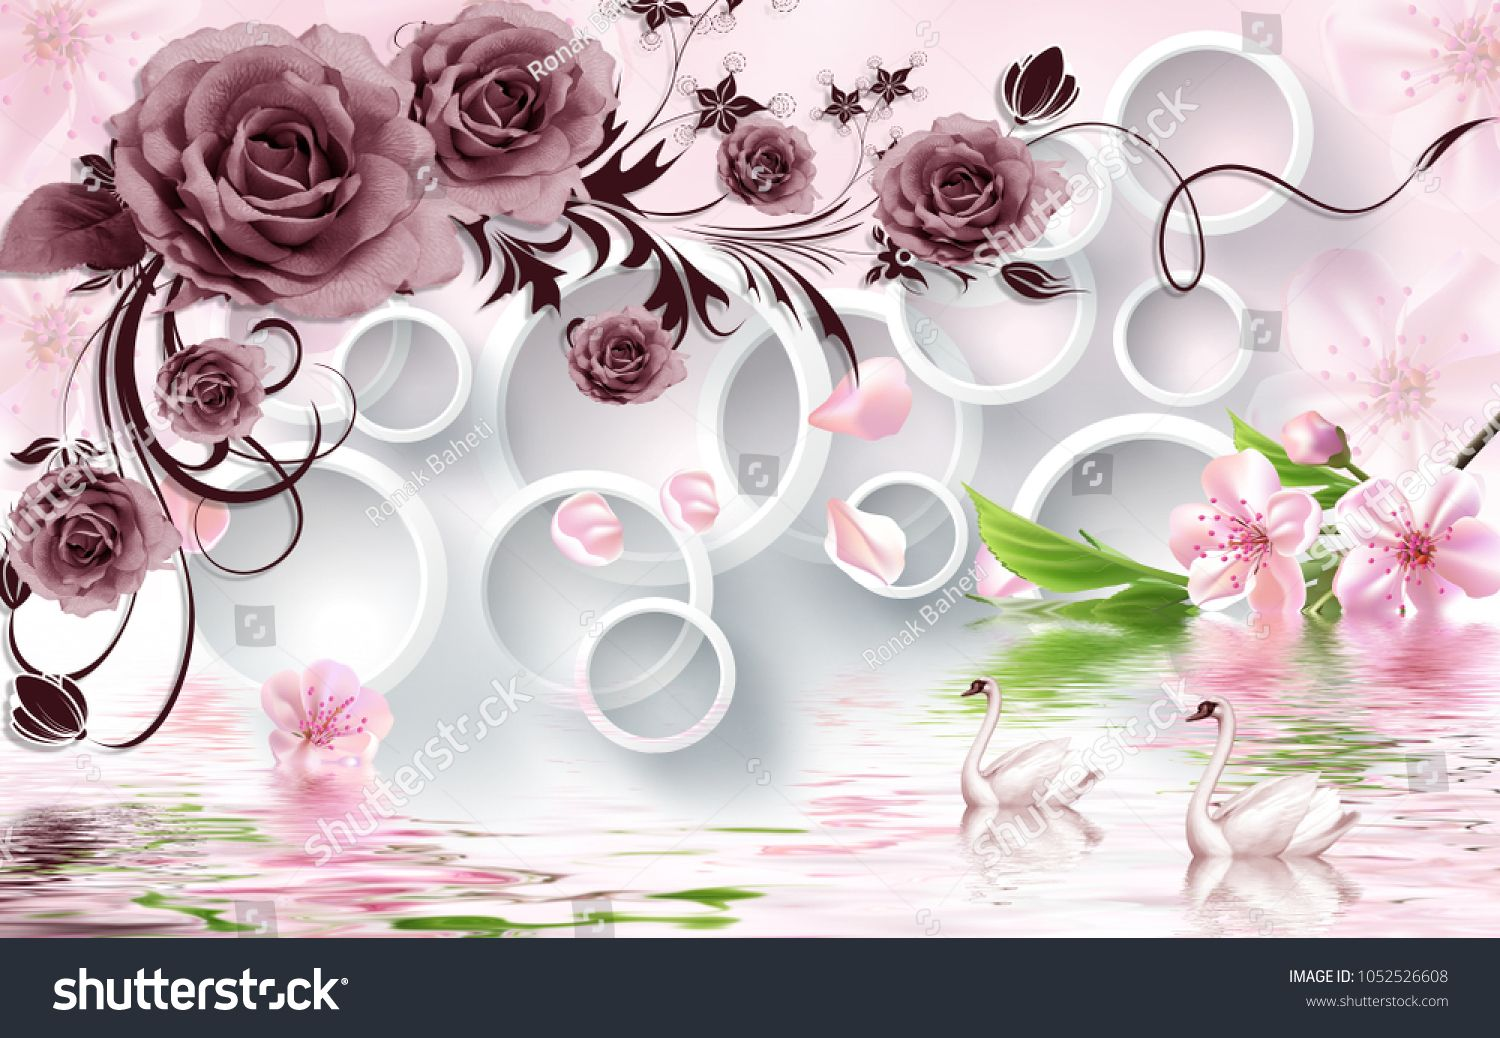 Rose Flowers On 3d White Circle Background With Duck Wallpaper For Walls White Circle Rose Flo Pink Wallpaper Backgrounds Pink Wallpaper Wallpaper Backgrounds